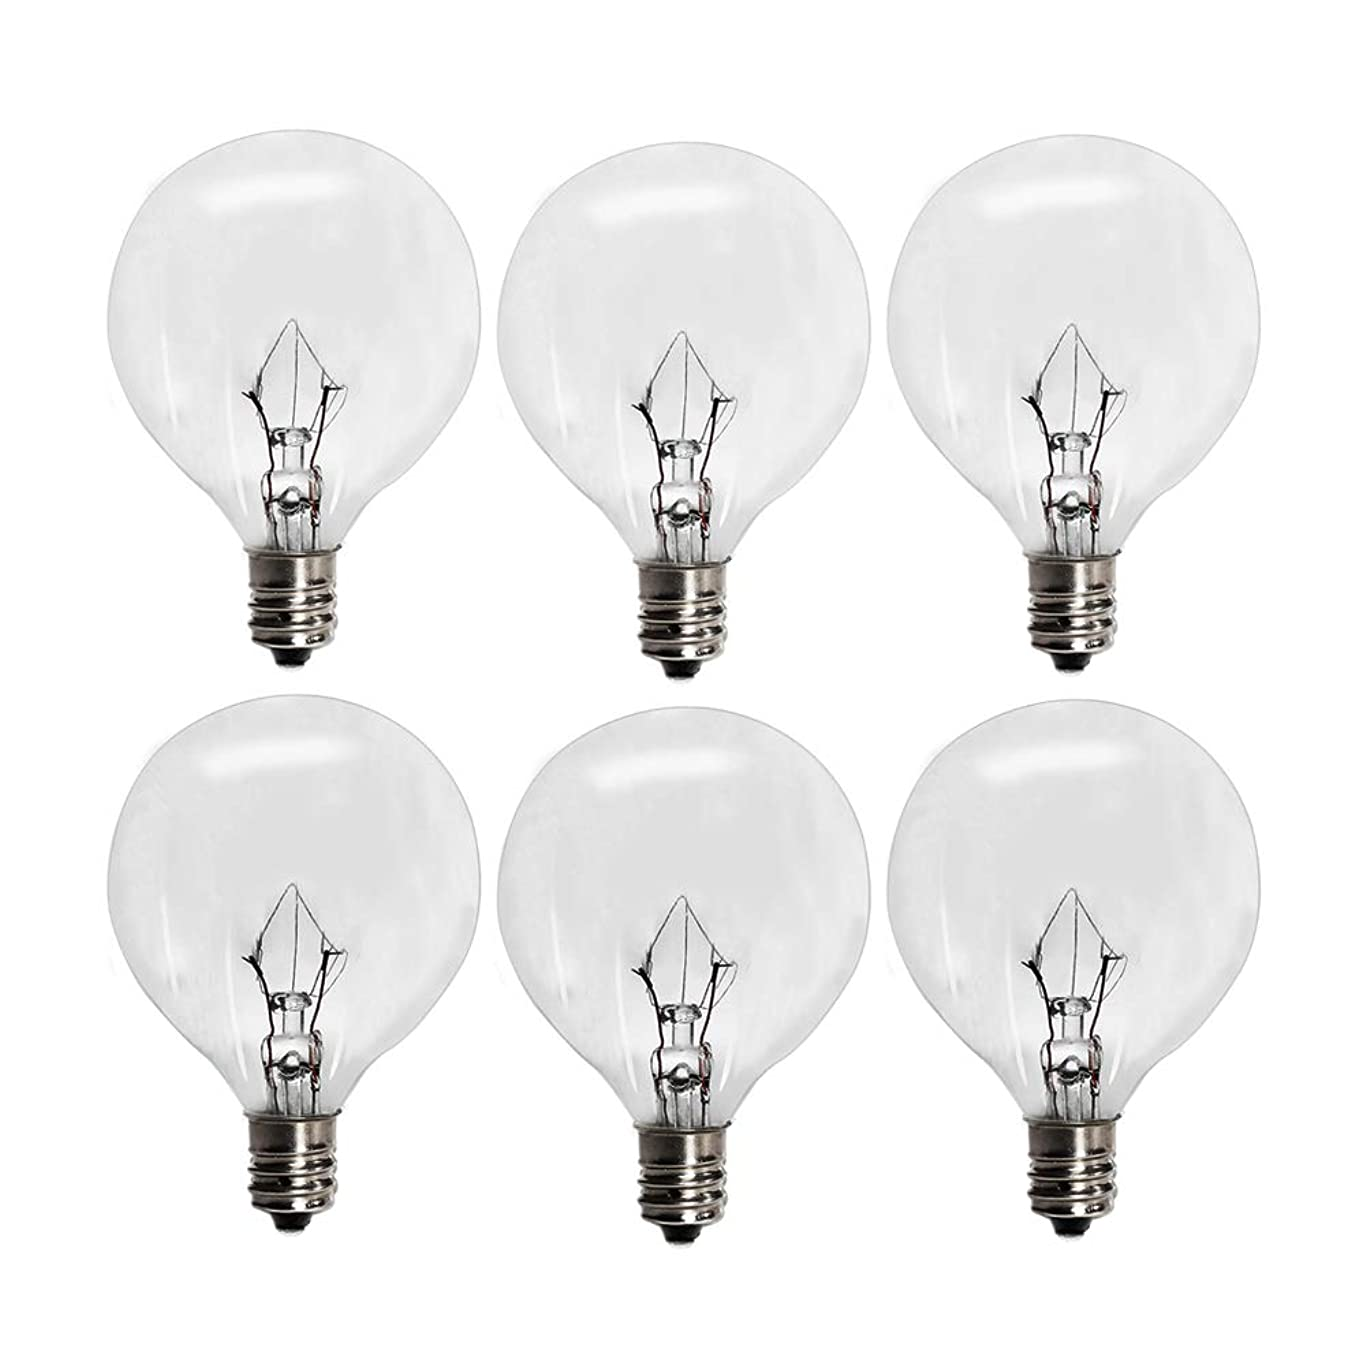 6 Pack Wax Warmer Bulbs,25 Watt Bulbs for Full-Size Scentsy Warmers,G16.5 Globe E12 Incandescent Candelabra Base Clear Light Bulbs for Candle Wax Warmer,1.97-Inch,Long Last Lifespan